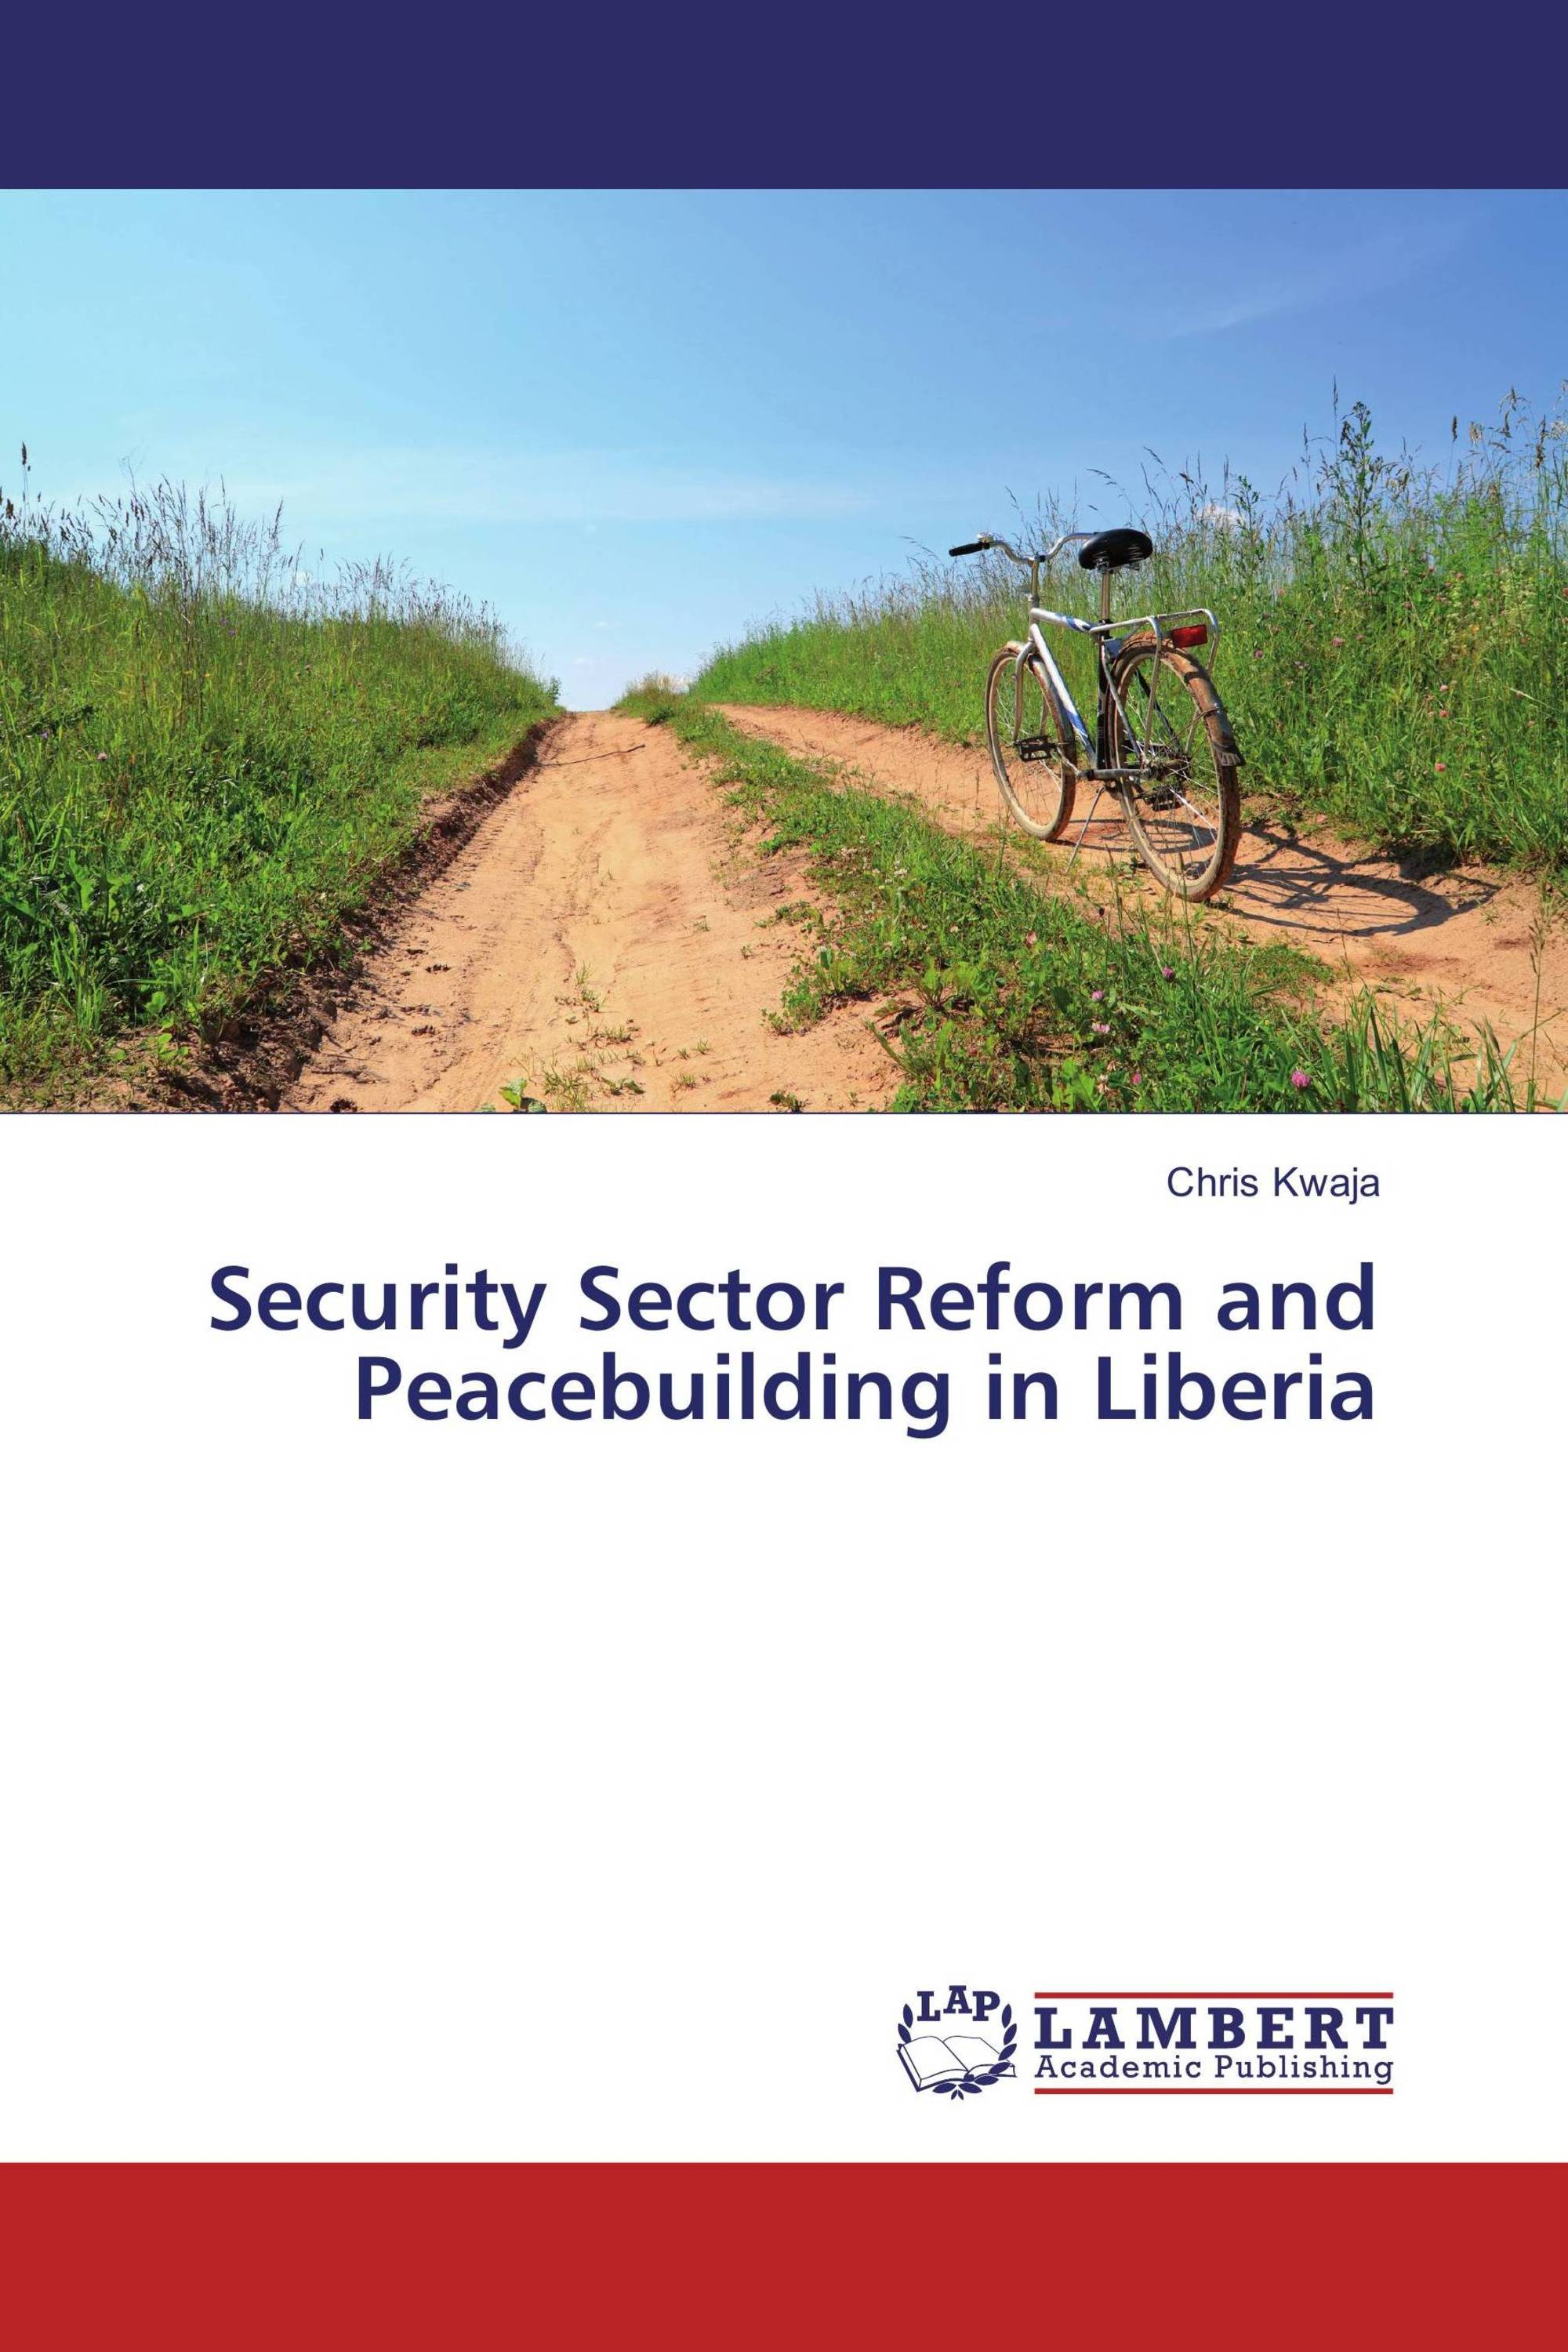 Security Sector Reform and Peacebuilding in Liberia